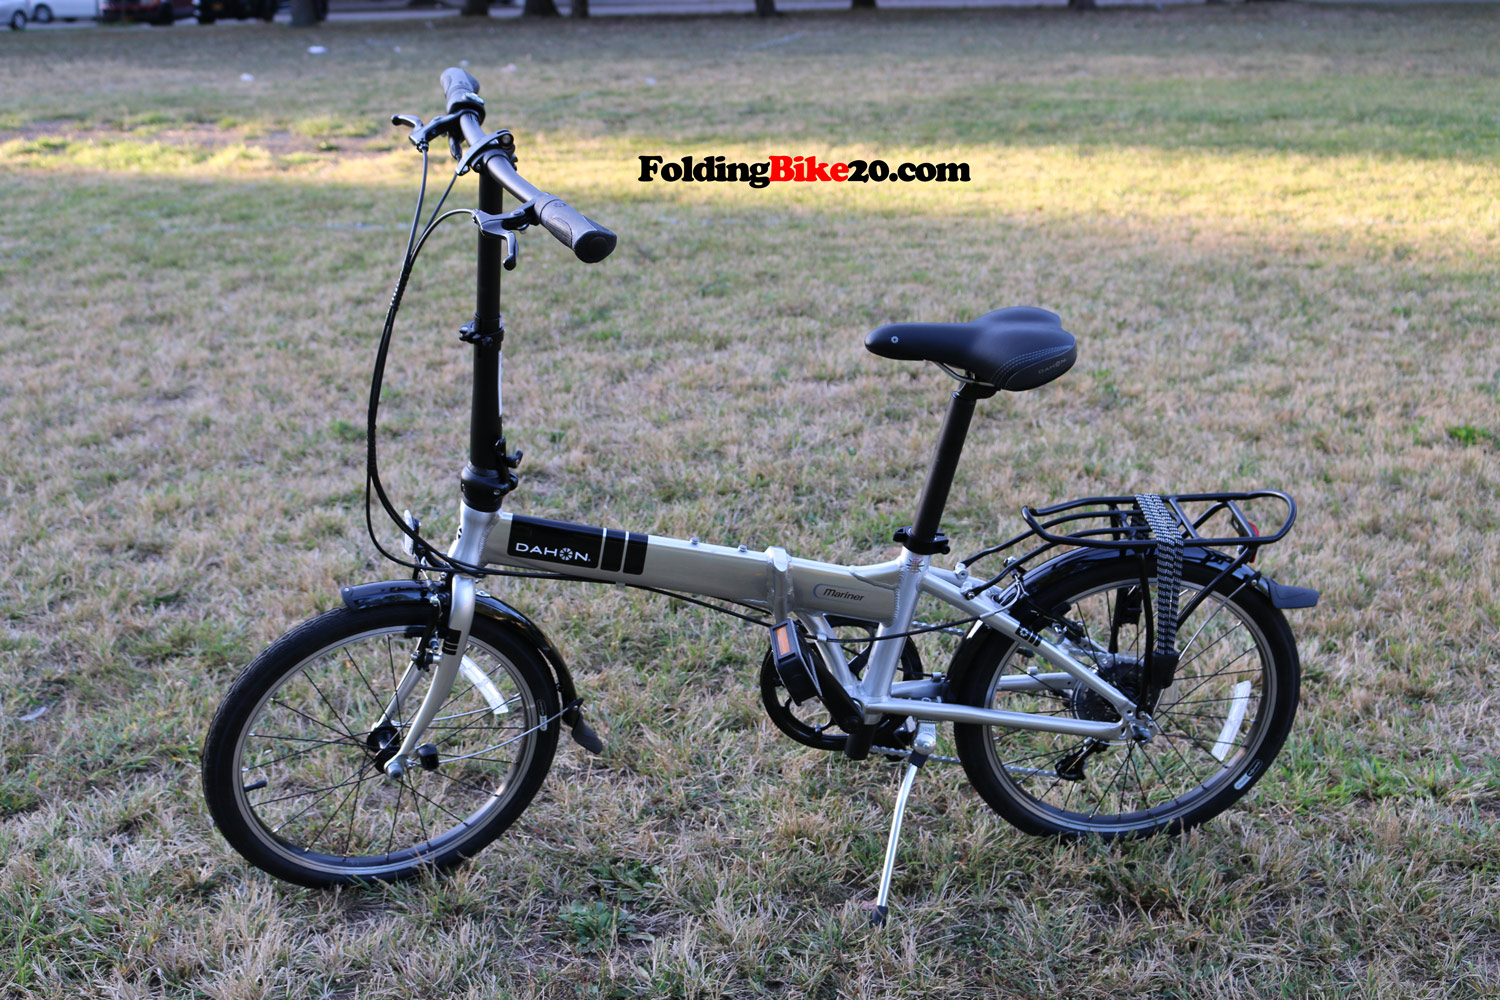 Dahon Mariner D7 Folding Bike Review Why It Is The Best